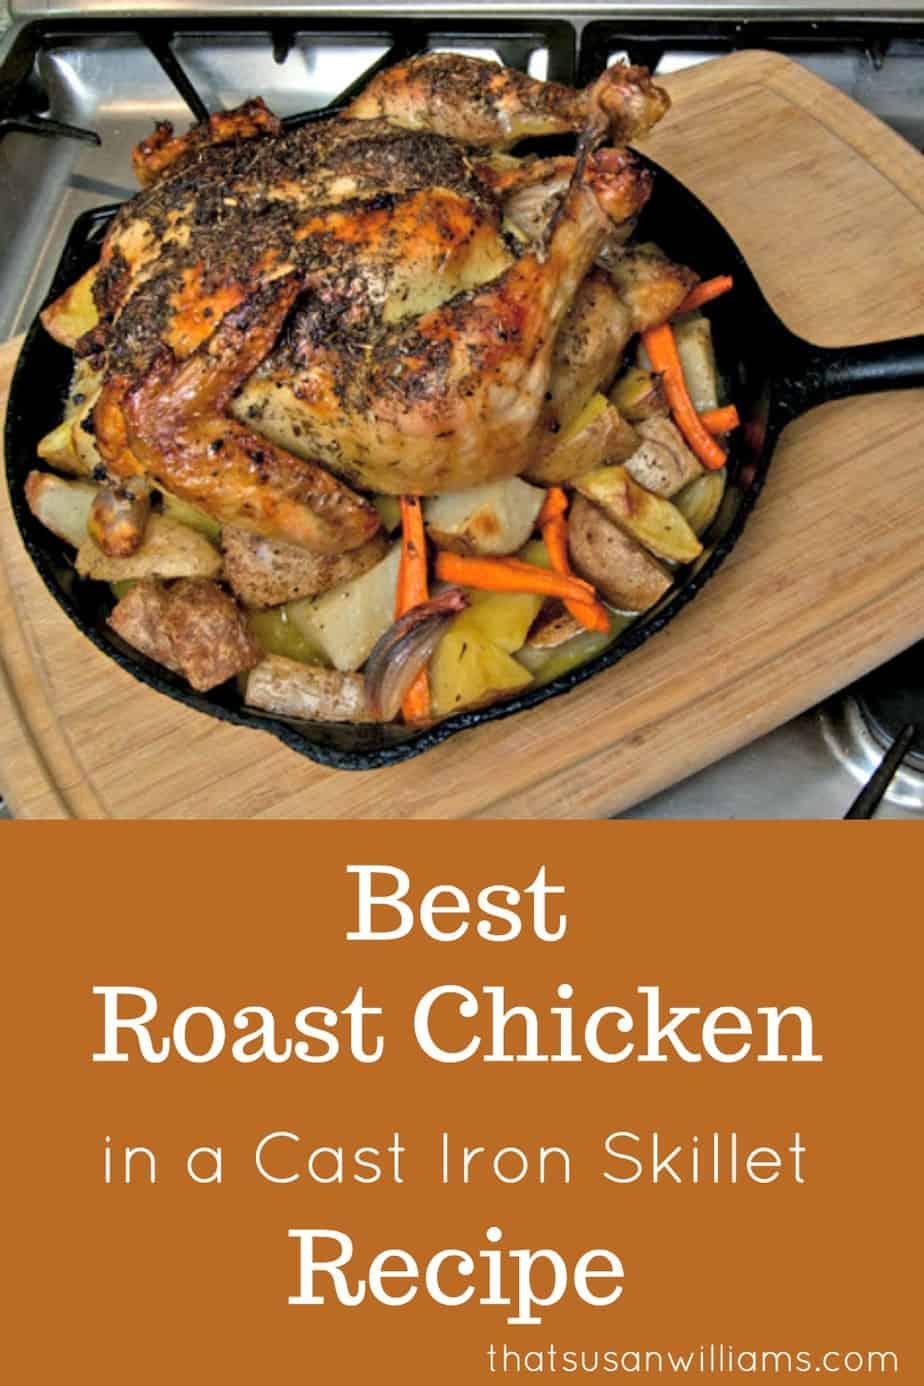 Best Roast Chicken in a Cast Iron Skillet has many innovative ideas, that take a simple Roast Chicken from Good, to GREAT. #chicken #roastchicken #oven #castiron #onepan